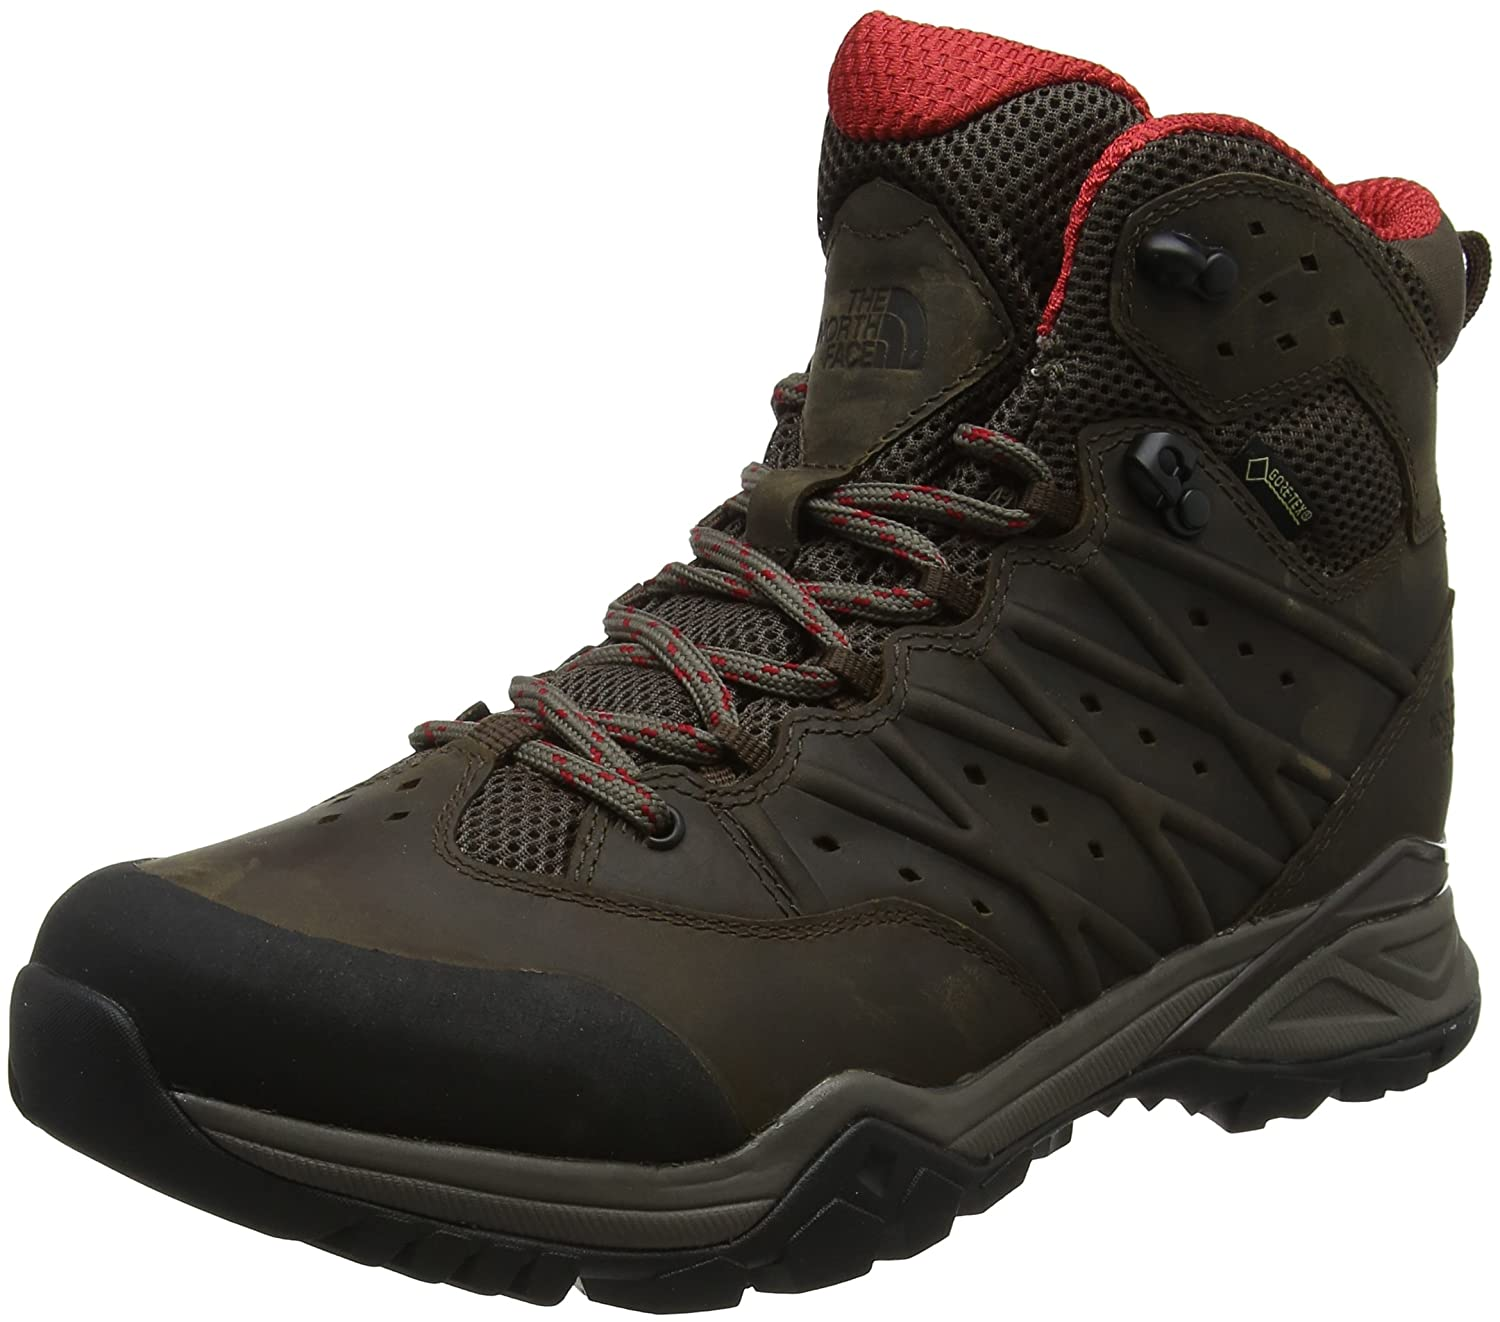 TALLA 40.5 EU. The North Face M HH Hike II MD GTX, Botas de Senderismo para Hombre